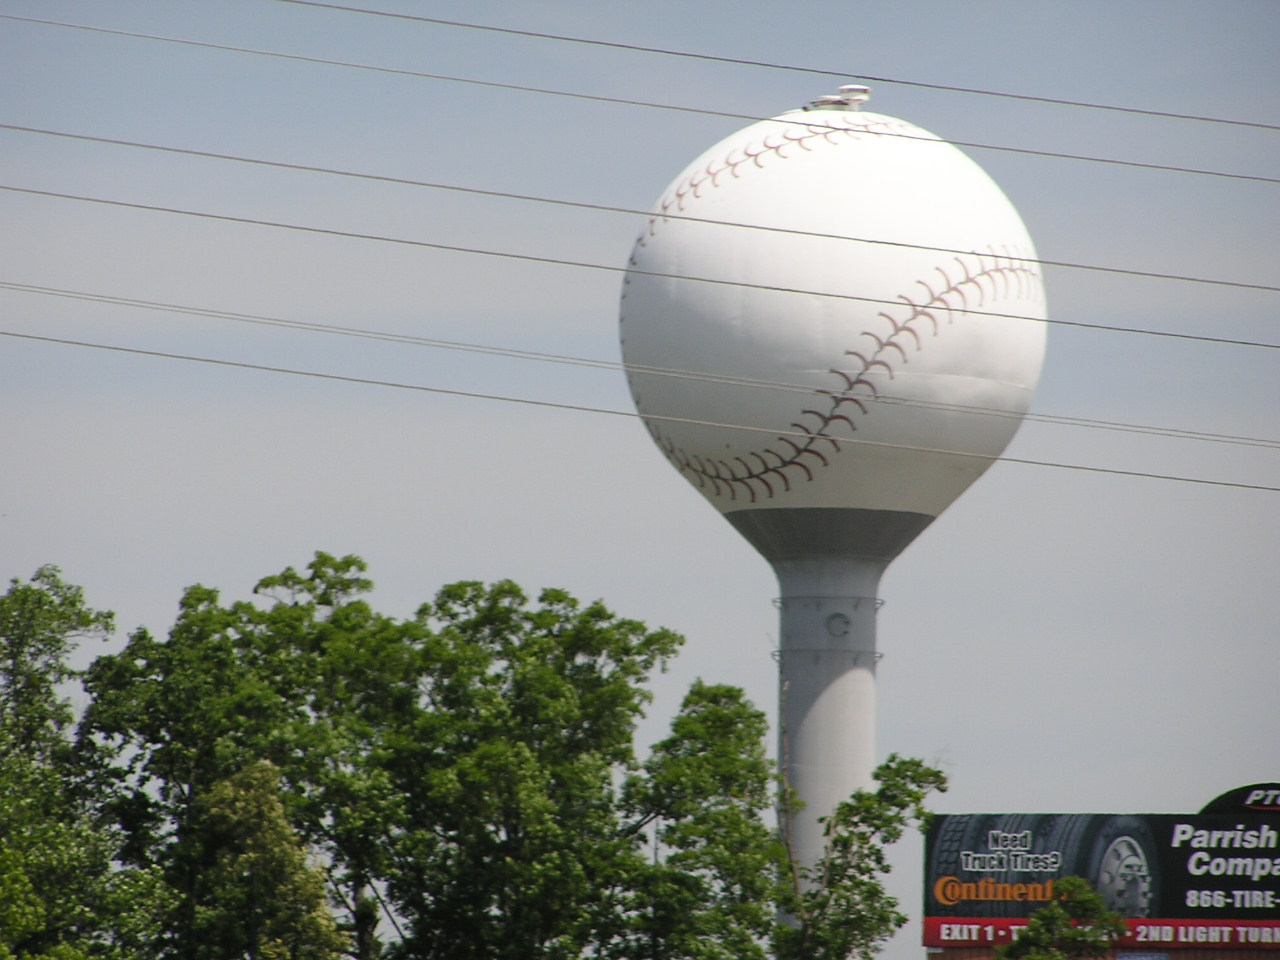 The Watertower at the Exit in Fort Mill, SC